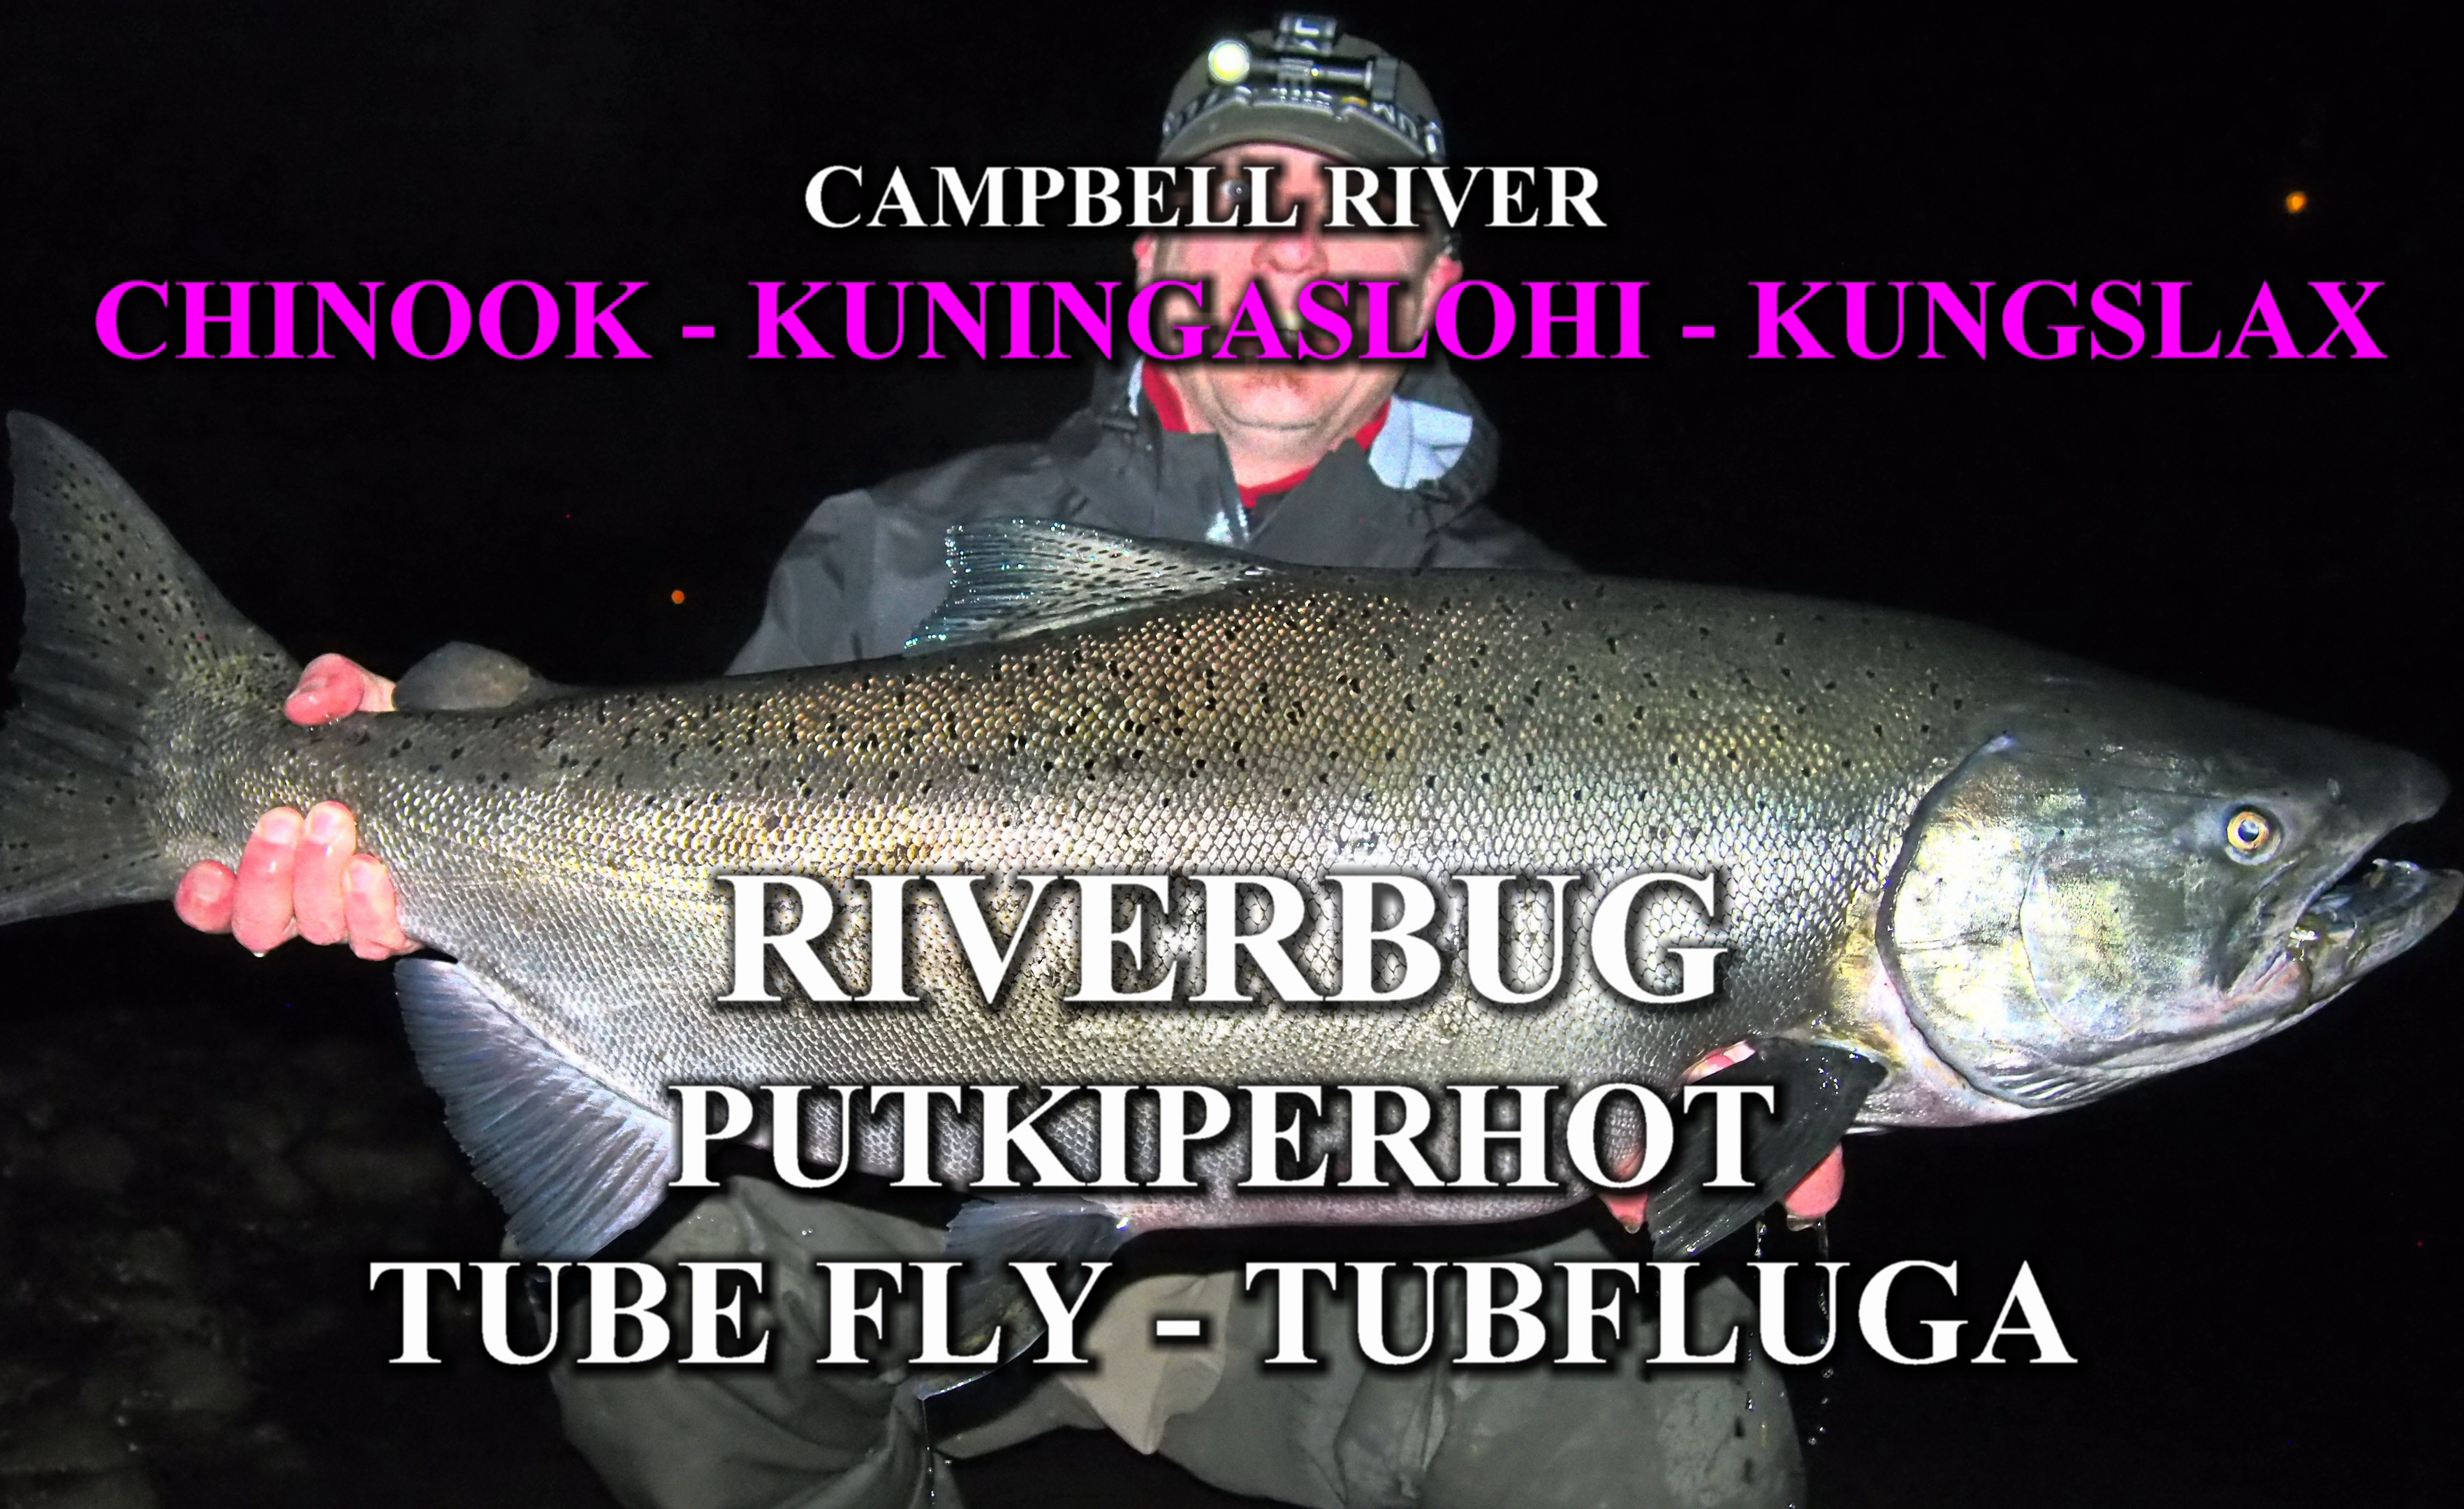 Spinfluga King Salmon ( KUNINGASLOHI ) with RiverBug tube fly from Campbell River (CAN). #kingsalmon #kuningaslohi #lohi #canada #putkiperhot #streamer #kalastus #fishing #kala #perhokauppa #riverbug #gobig #campbellriver #fishingguide #kalastusopas #proguide #fishingguidefinland #spinfluga